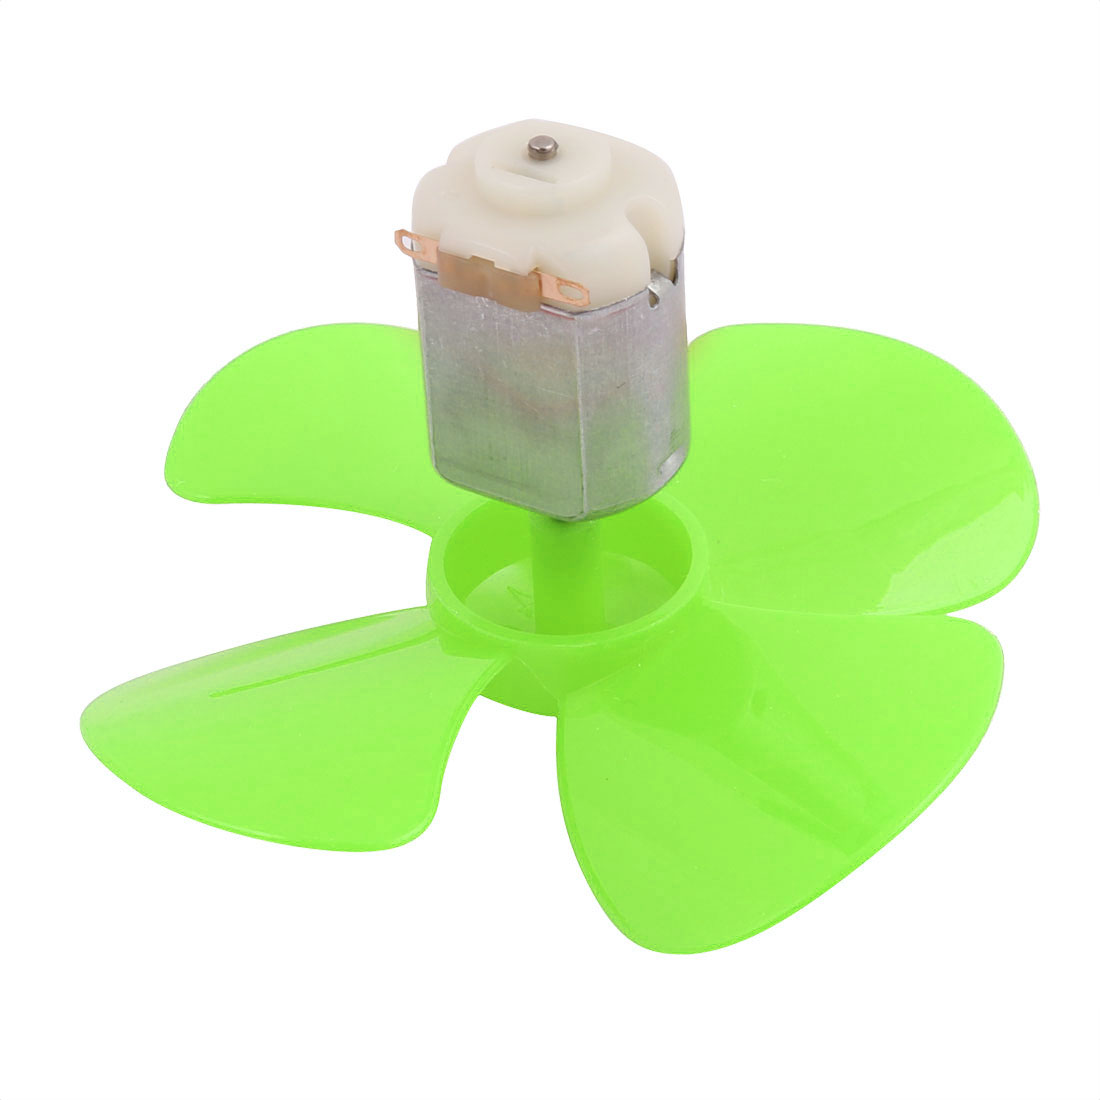 5Pcs DC 6V 0.21A 13000RPM Strong Force Motor 4 Vanes Green Propeller 80mmx2mm - image 2 of 5